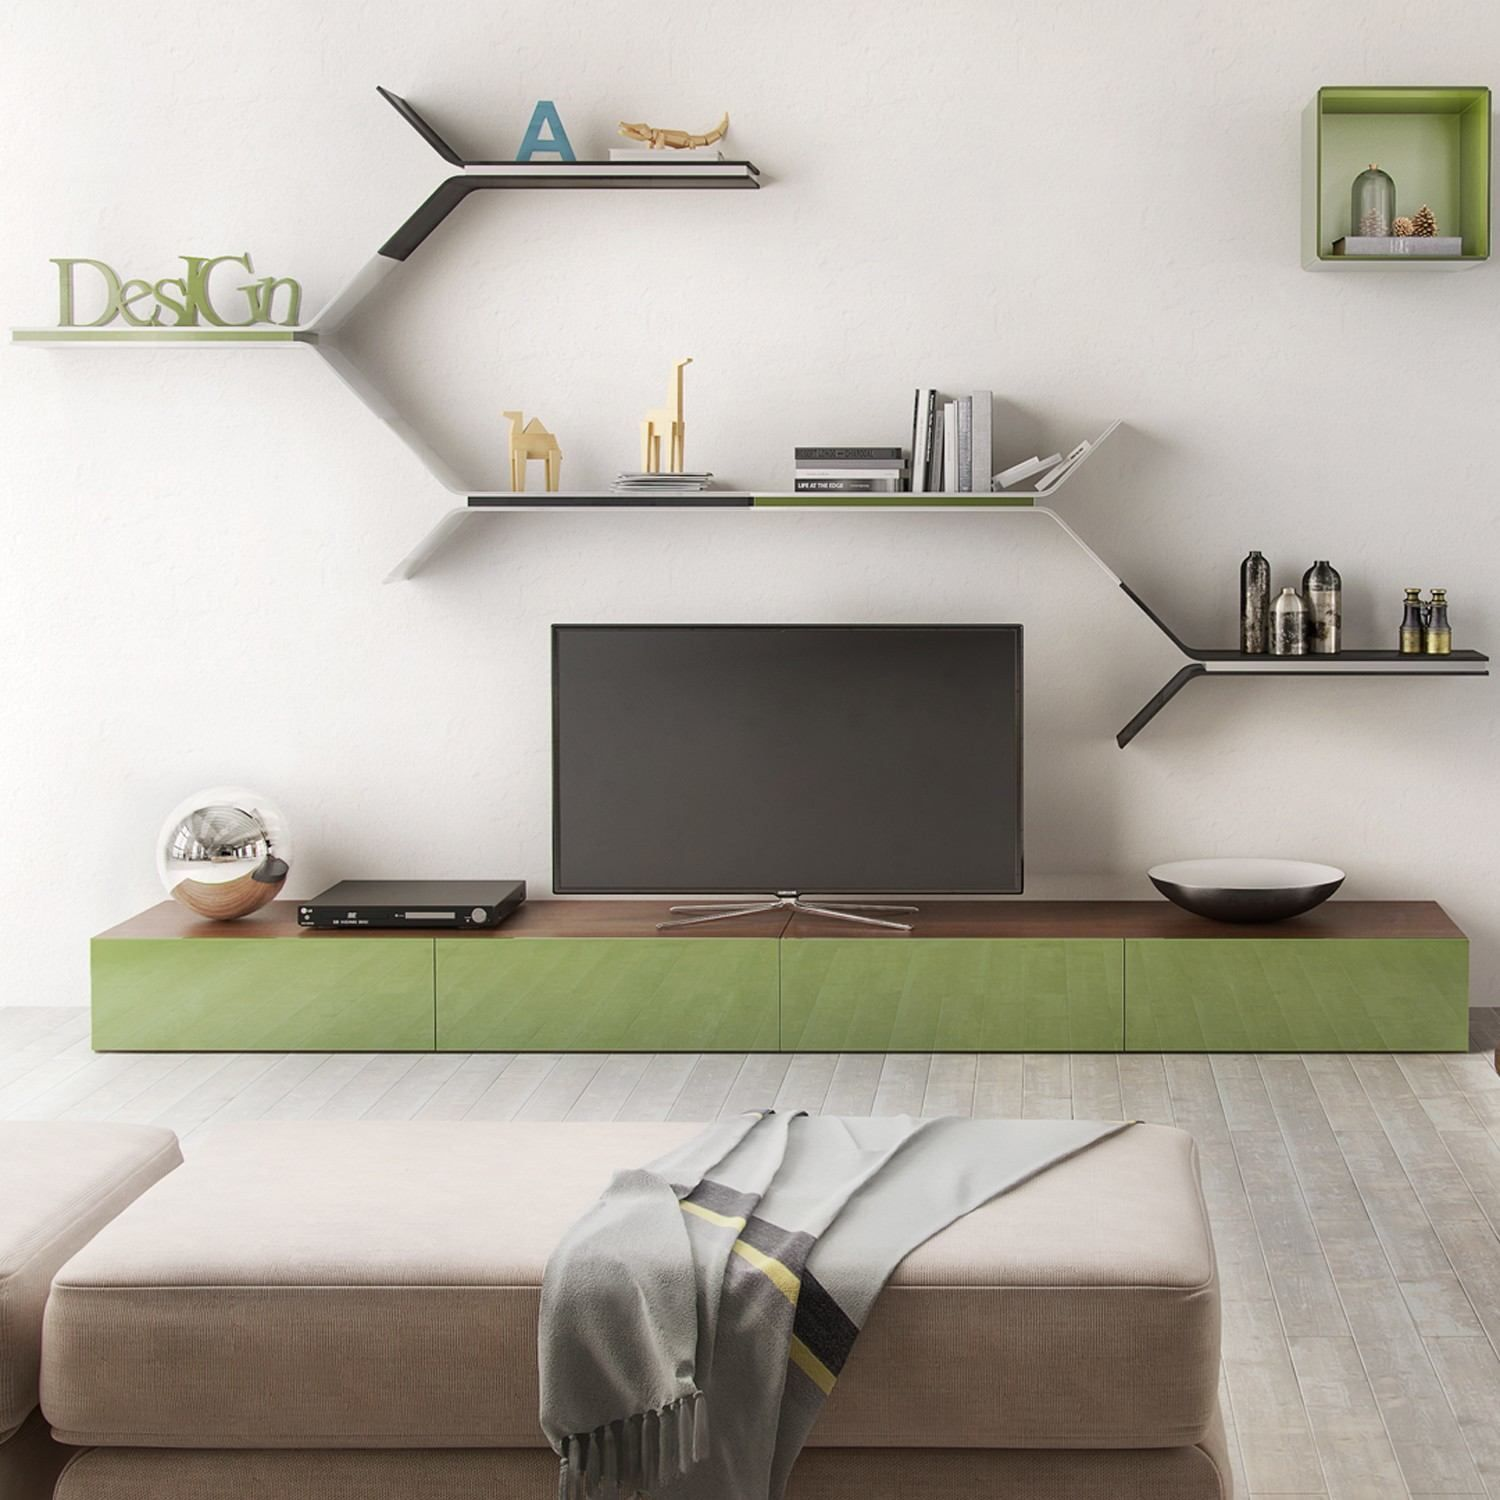 arvo Wall Shelf from URBN